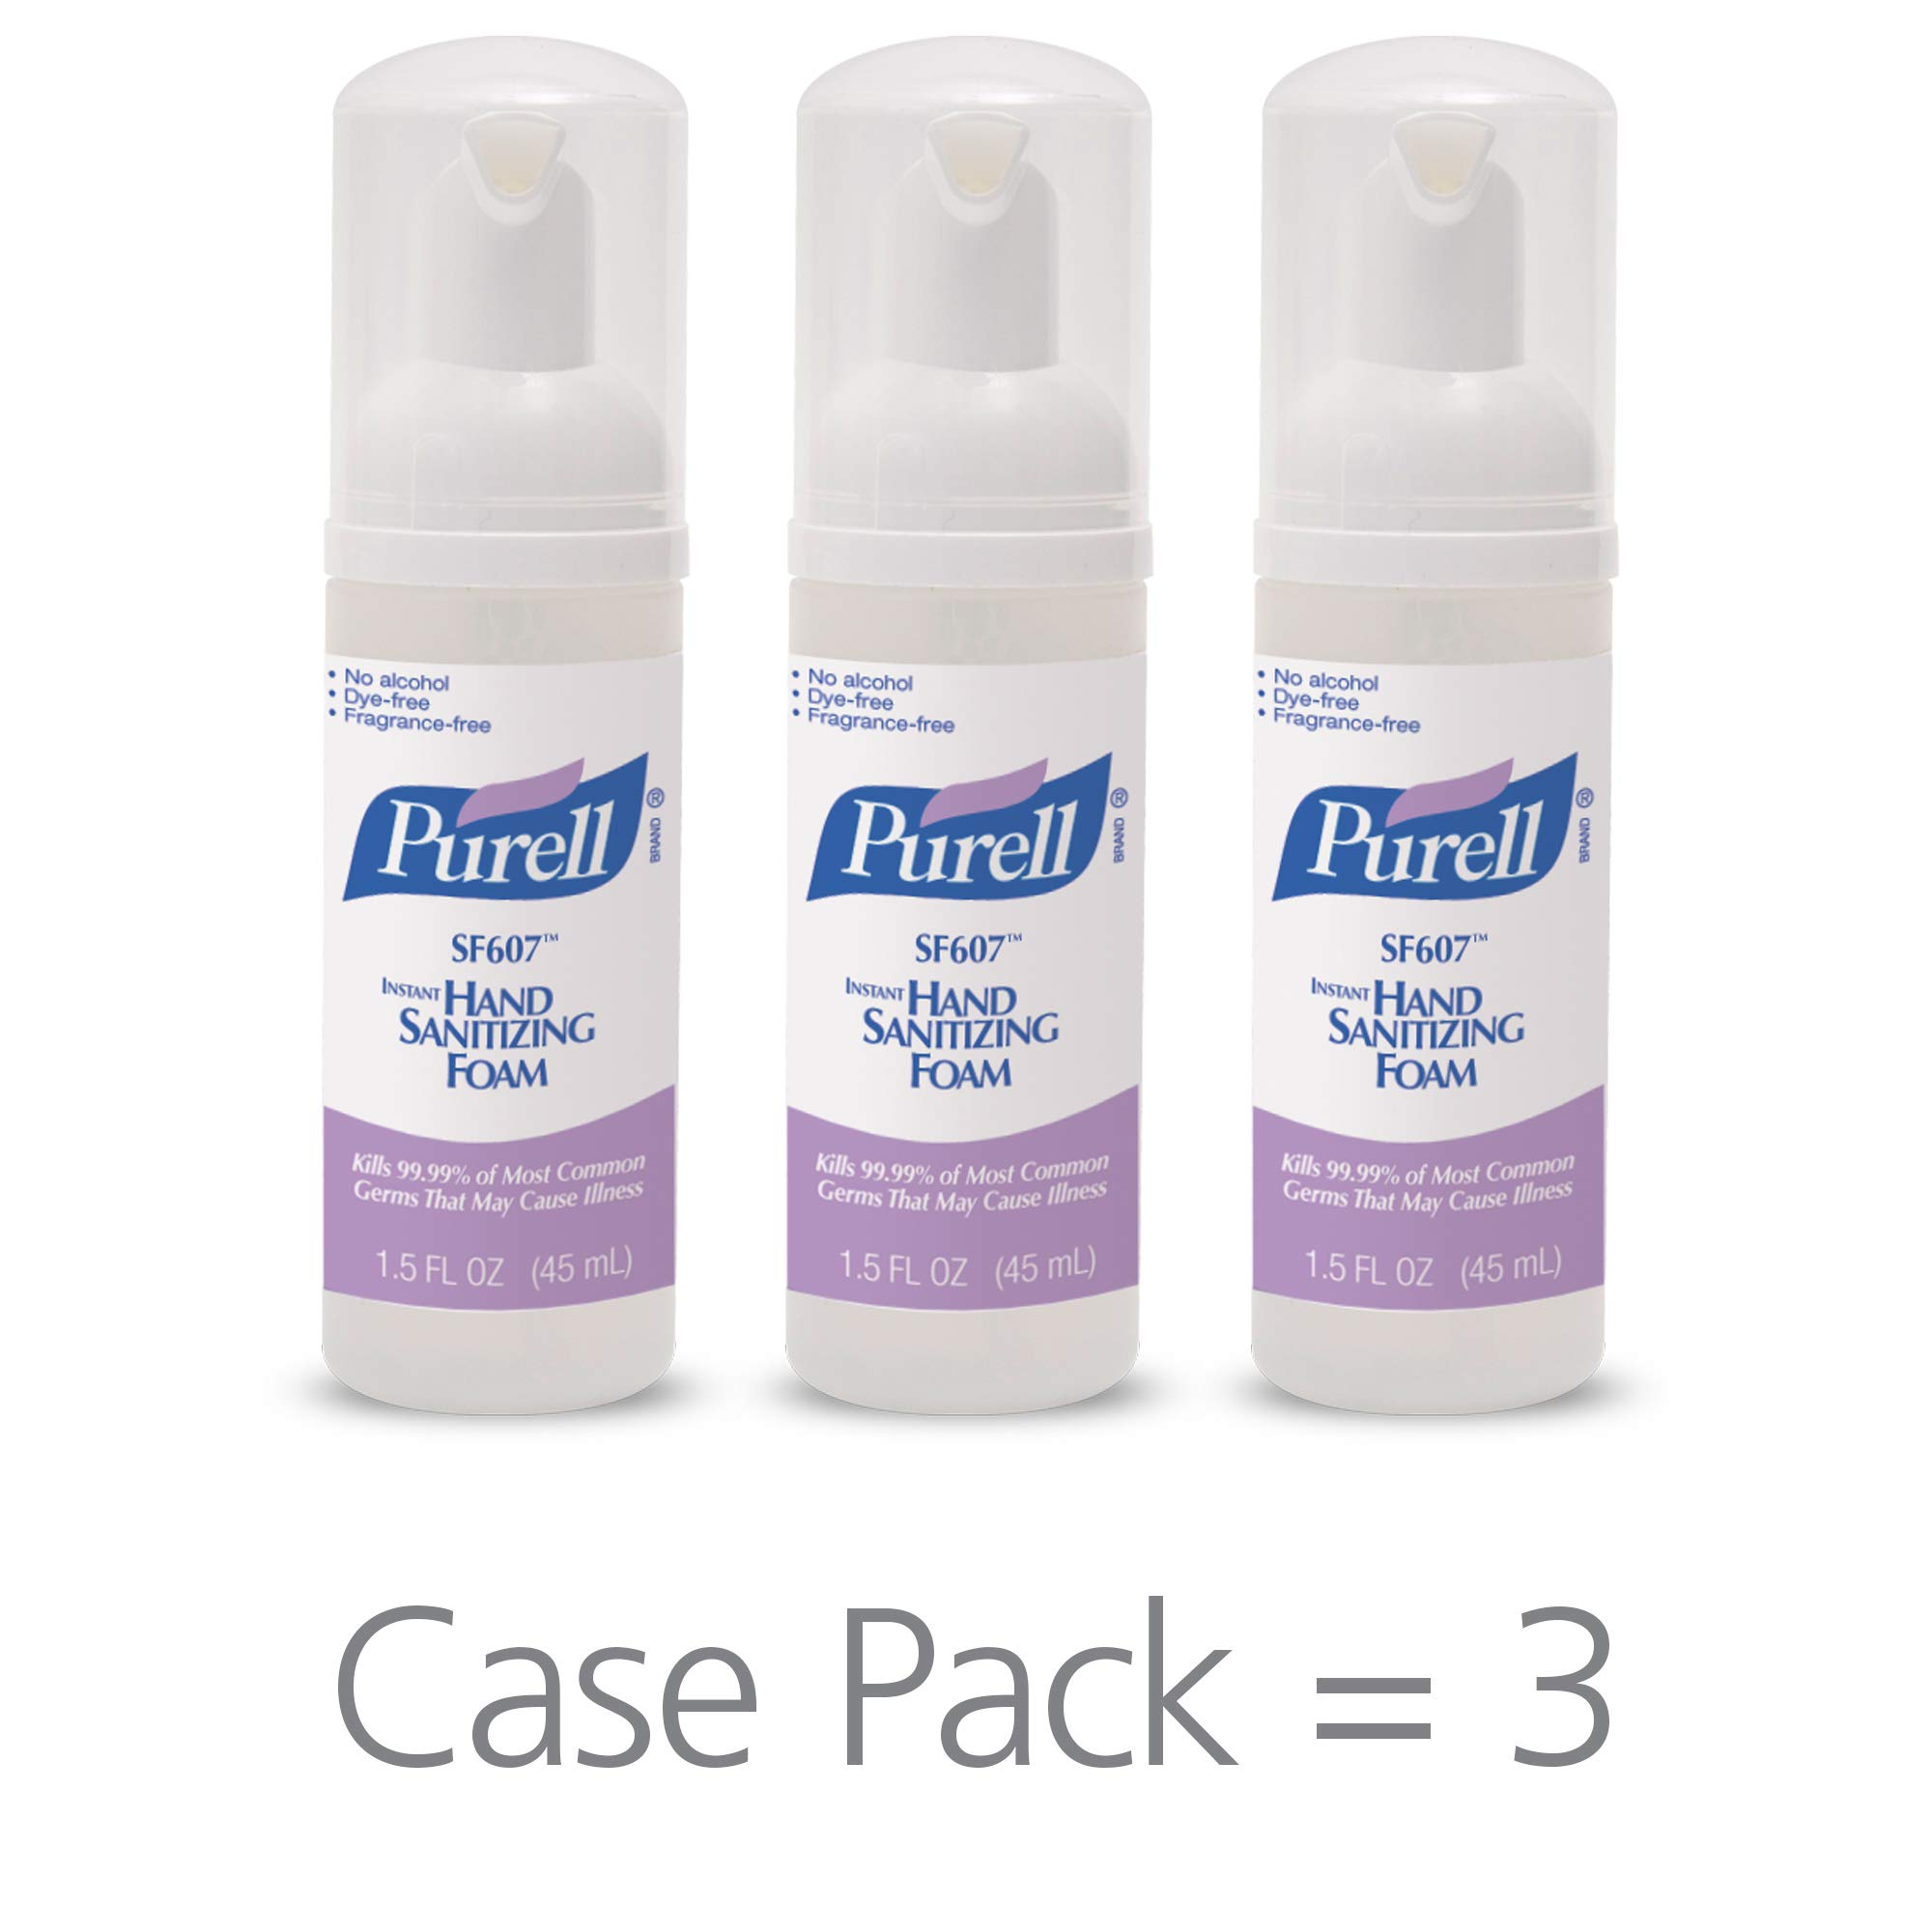 PURELL SF607 Hand Sanitizer Foam, Alcohol Free Formulation, 45 mL Portable, Travel Sized Pump Bottle (Pack of 3) - 5684-08-EC by Purell